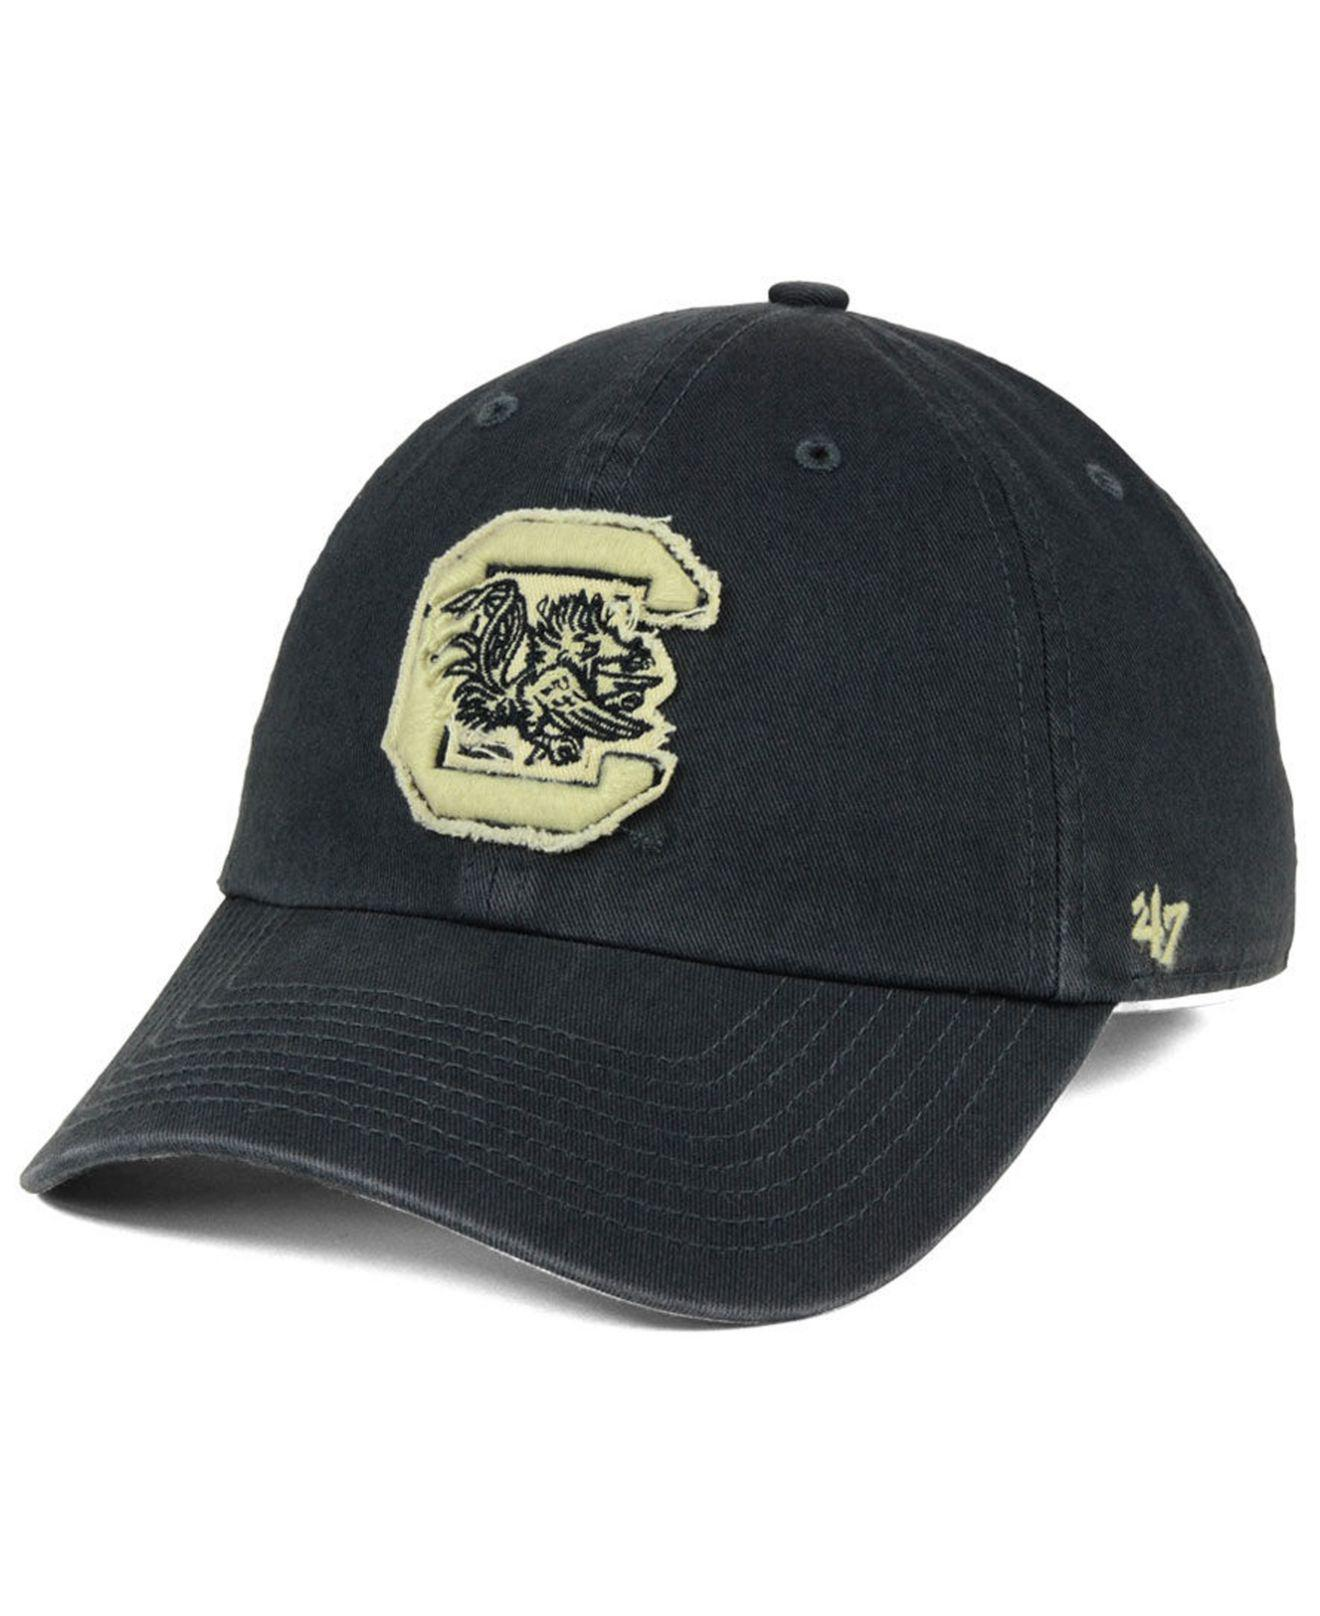 save off 5b6b4 7585f ... canada 47 brand. mens blue south carolina gamecocks double out clean up  cap f8c9a 97b7c